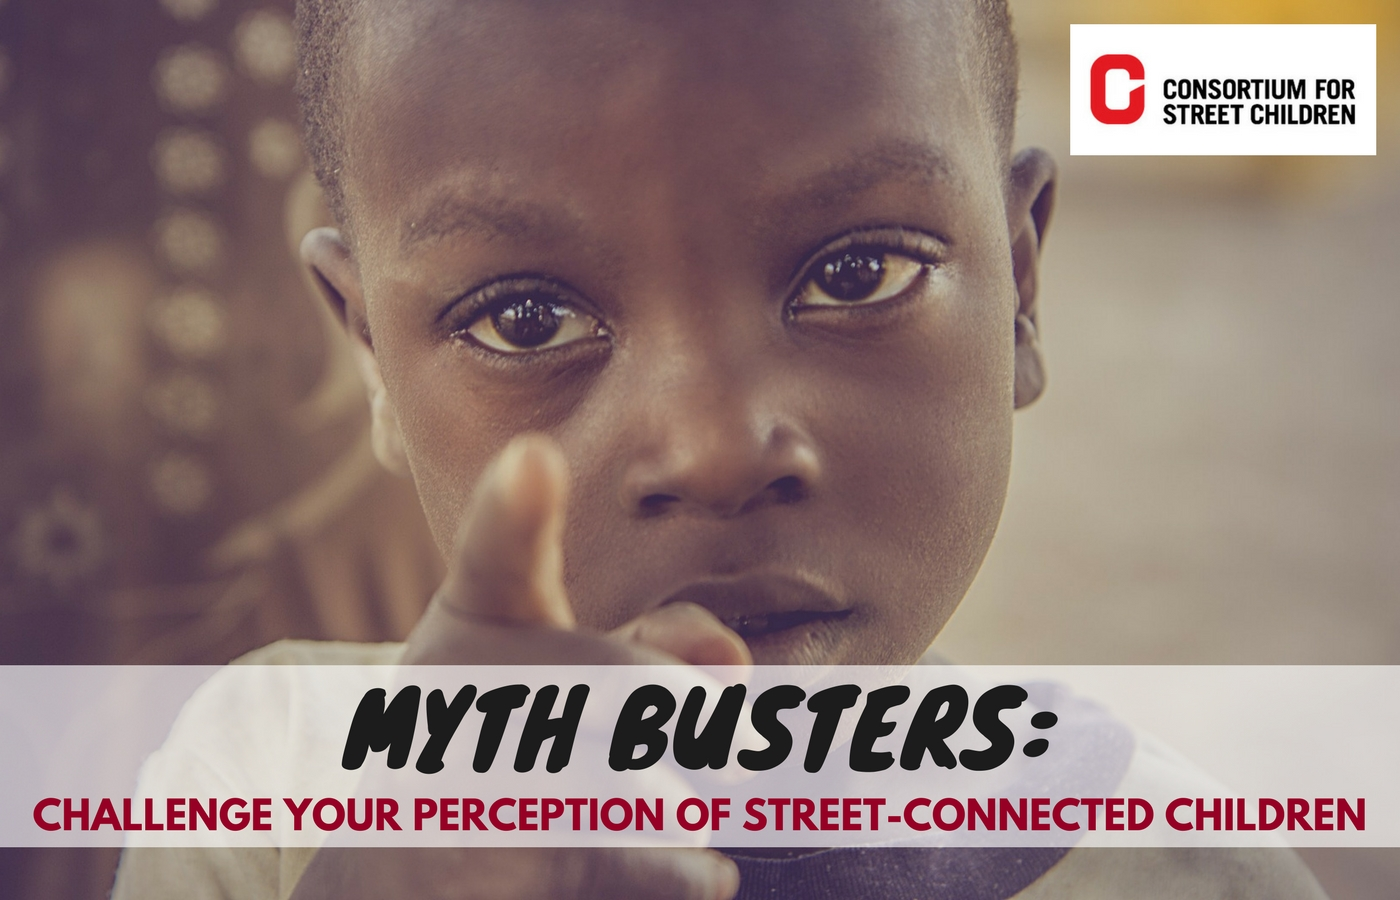 Myth Buster blog about Street Children